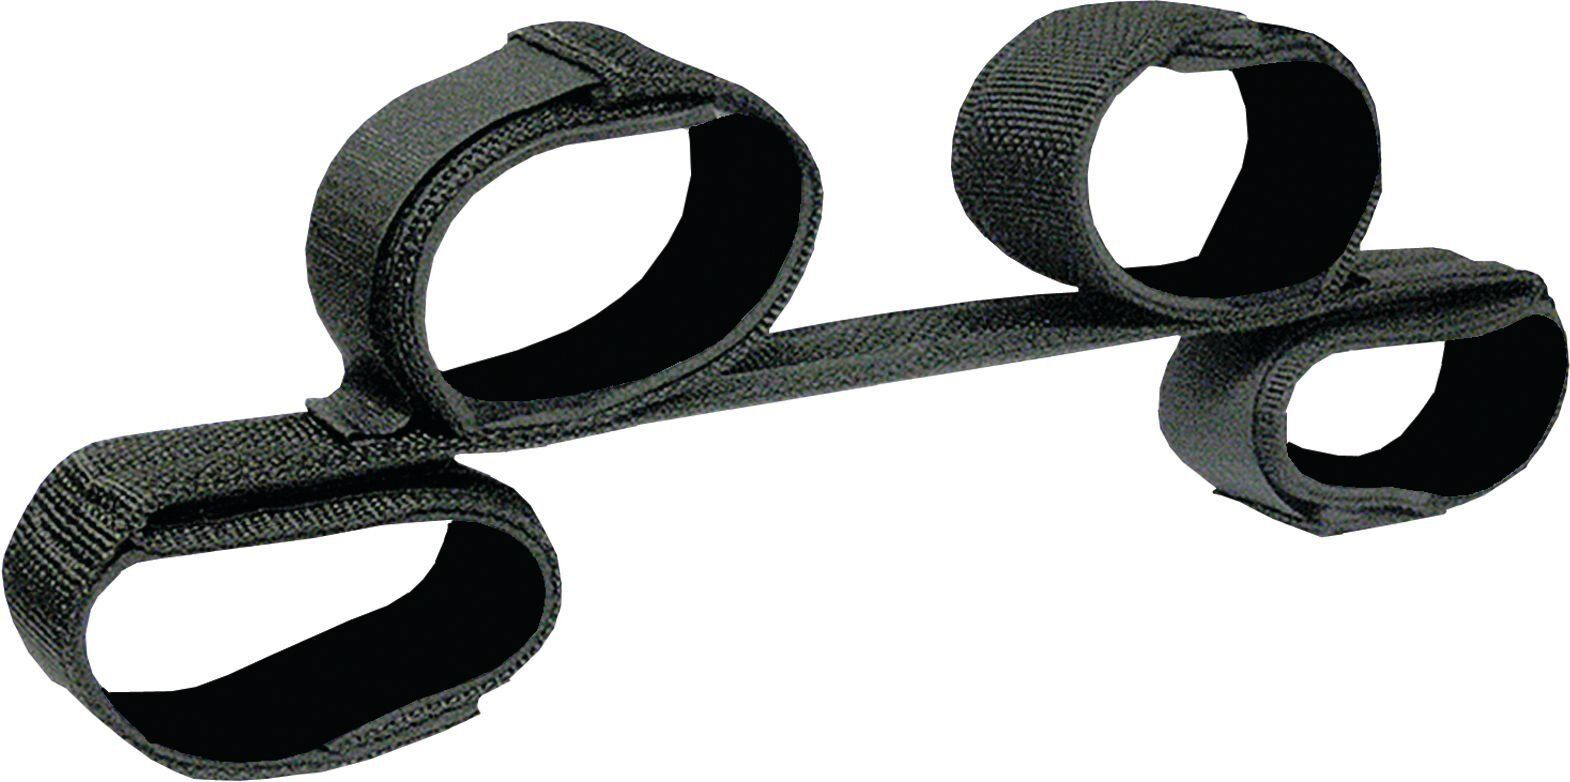 Adjustable Velcro Soft Ankle Cuffs Bondage Toys For Sale